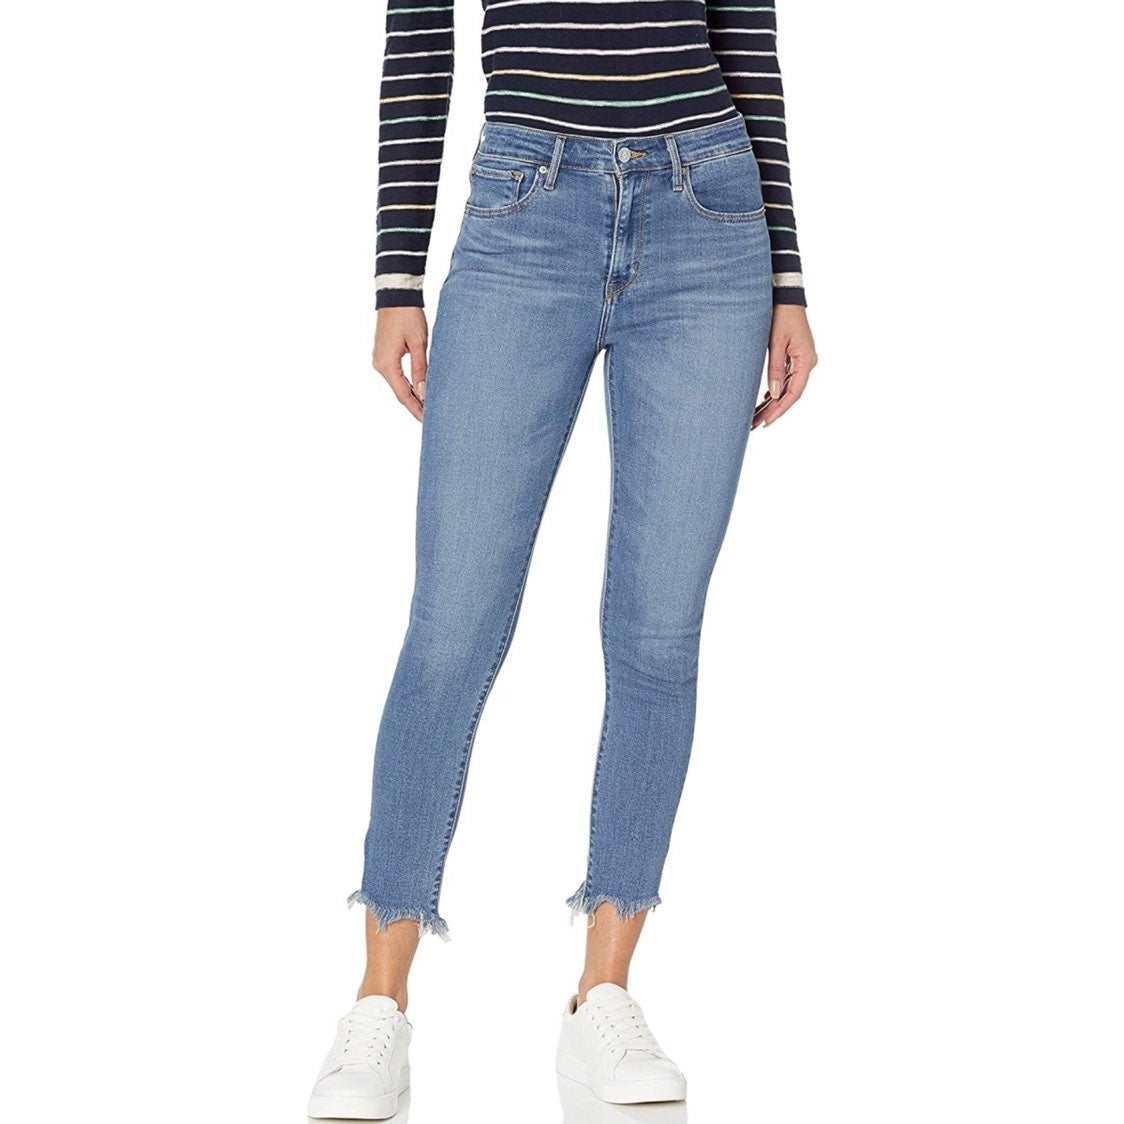 Levi's Women 721 High Rise Skinny Jeans